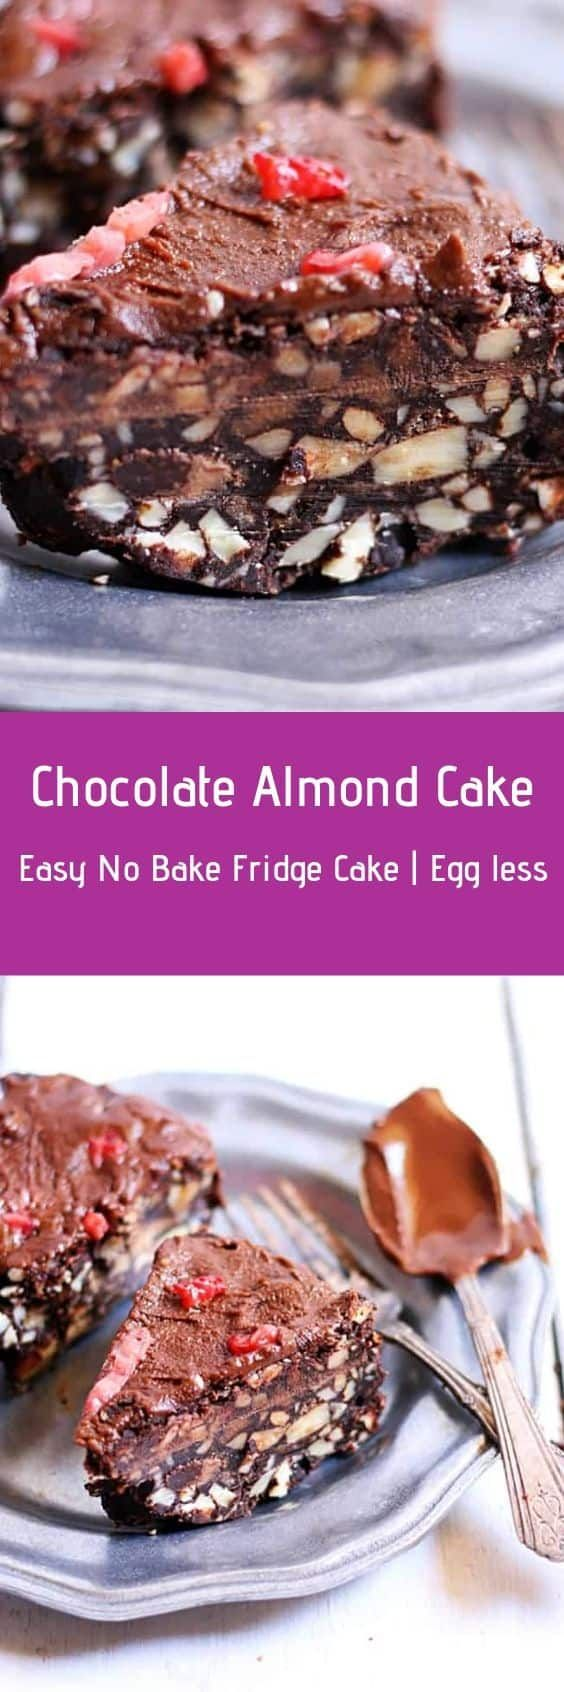 No bake almond cake recipe.Check out recipe ...